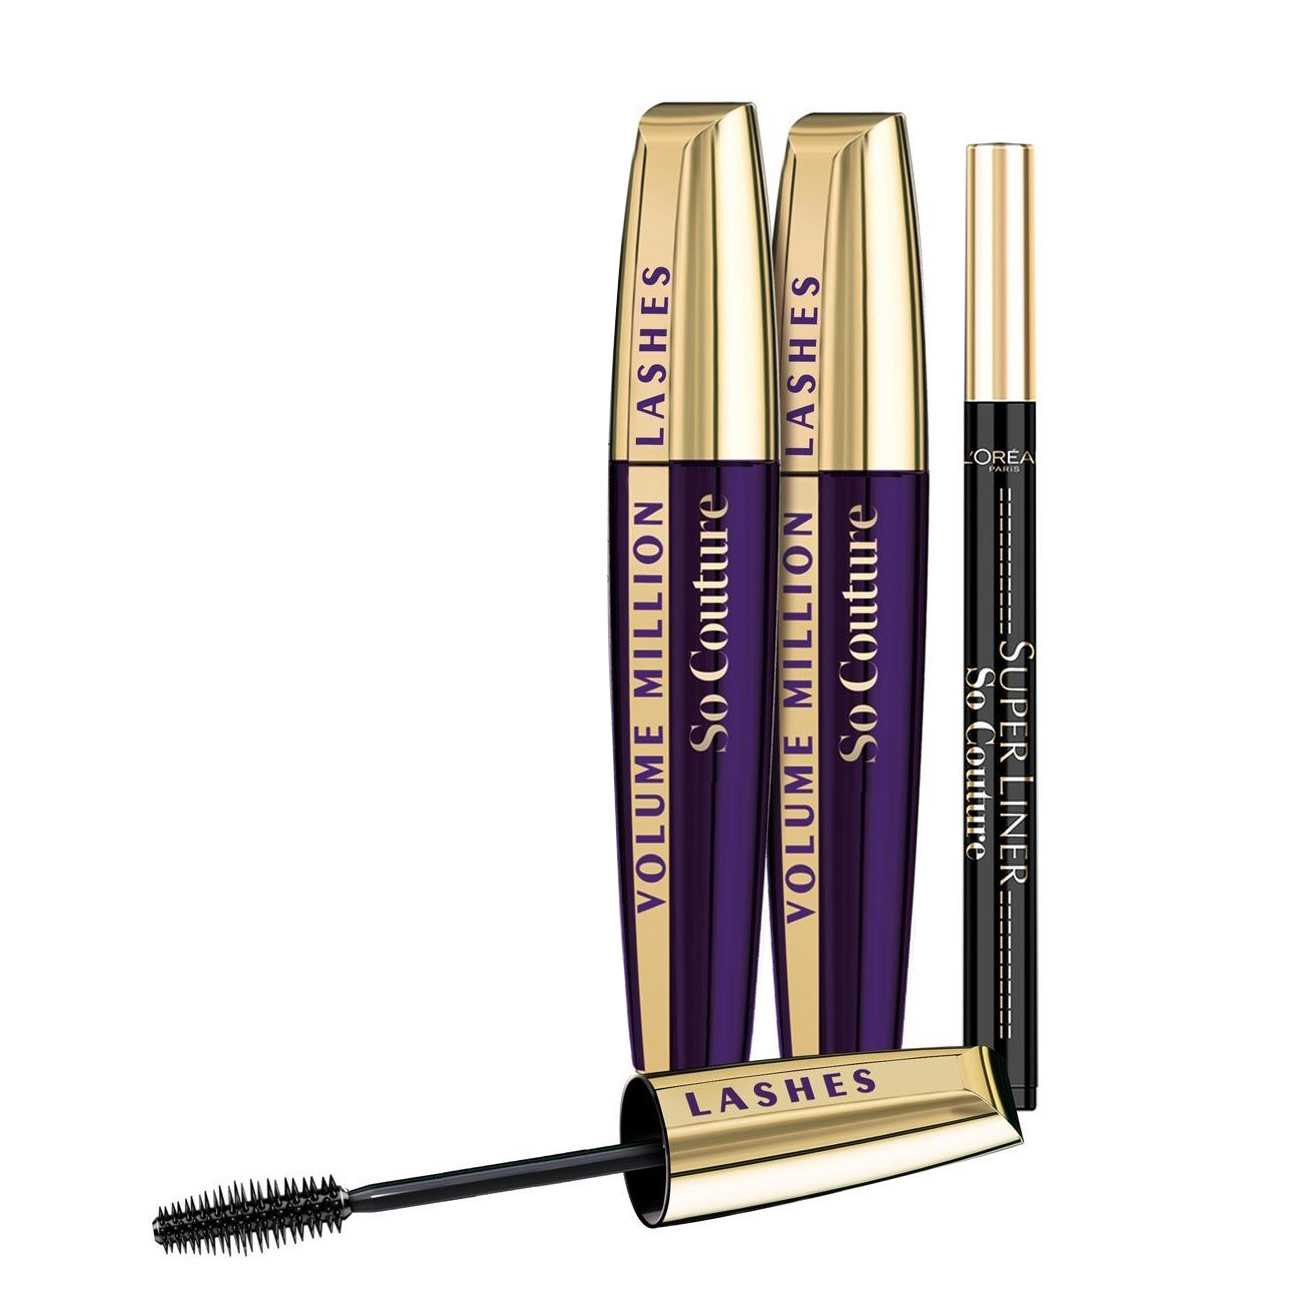 VOLUME MILLION LASHES MASCARA SET 14 ML imagine produs